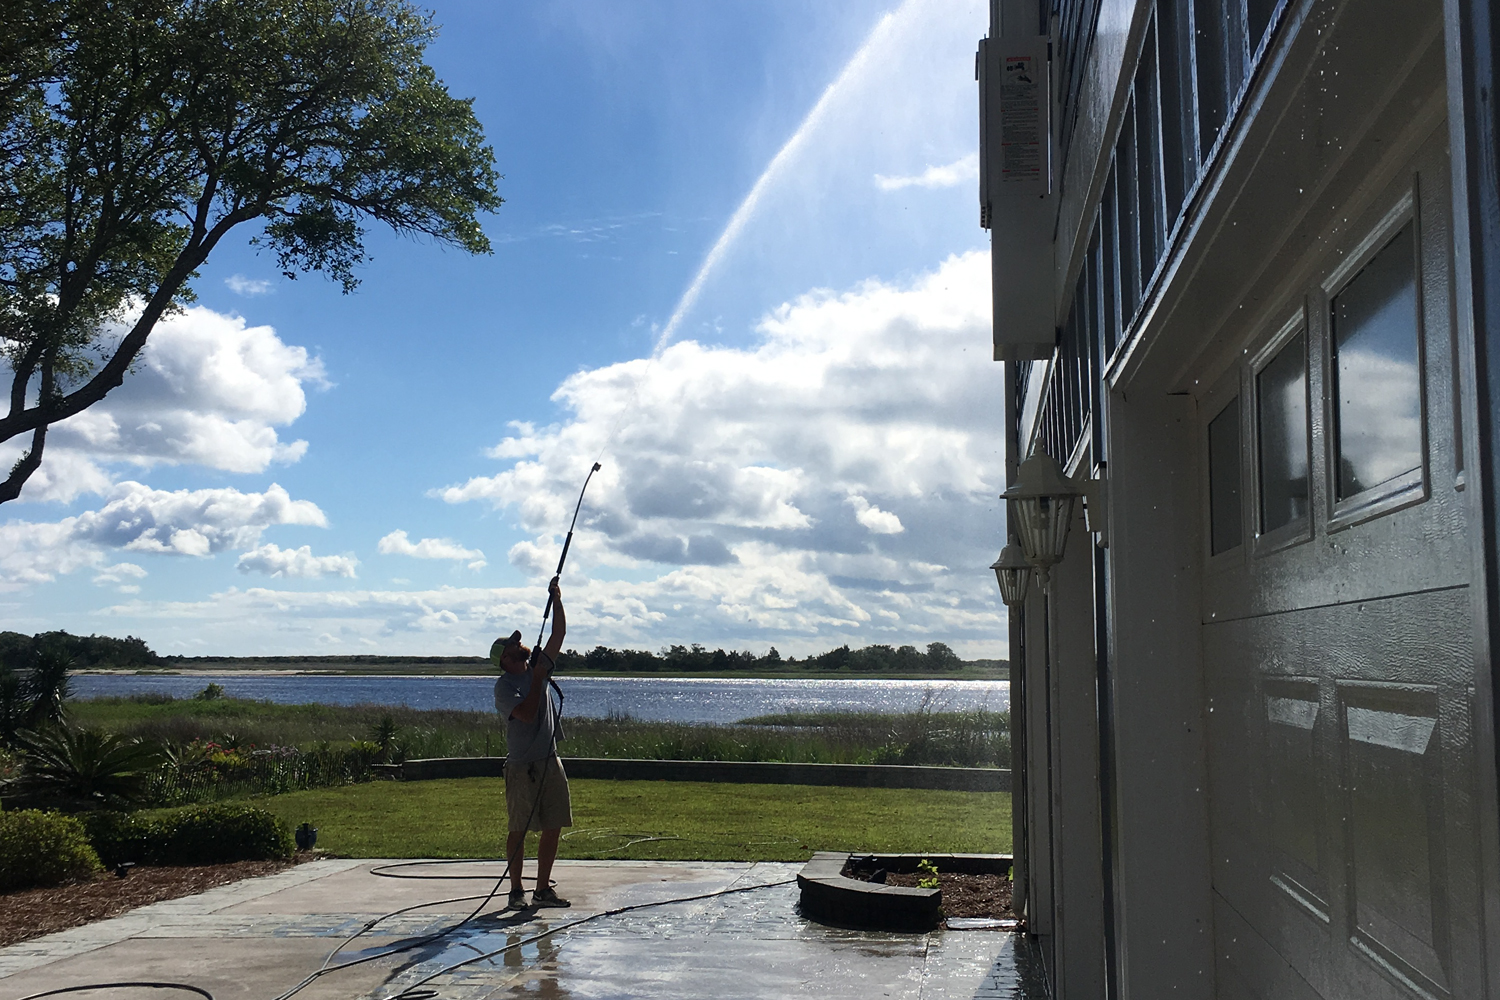 Pressure washing wrightsville beach nc